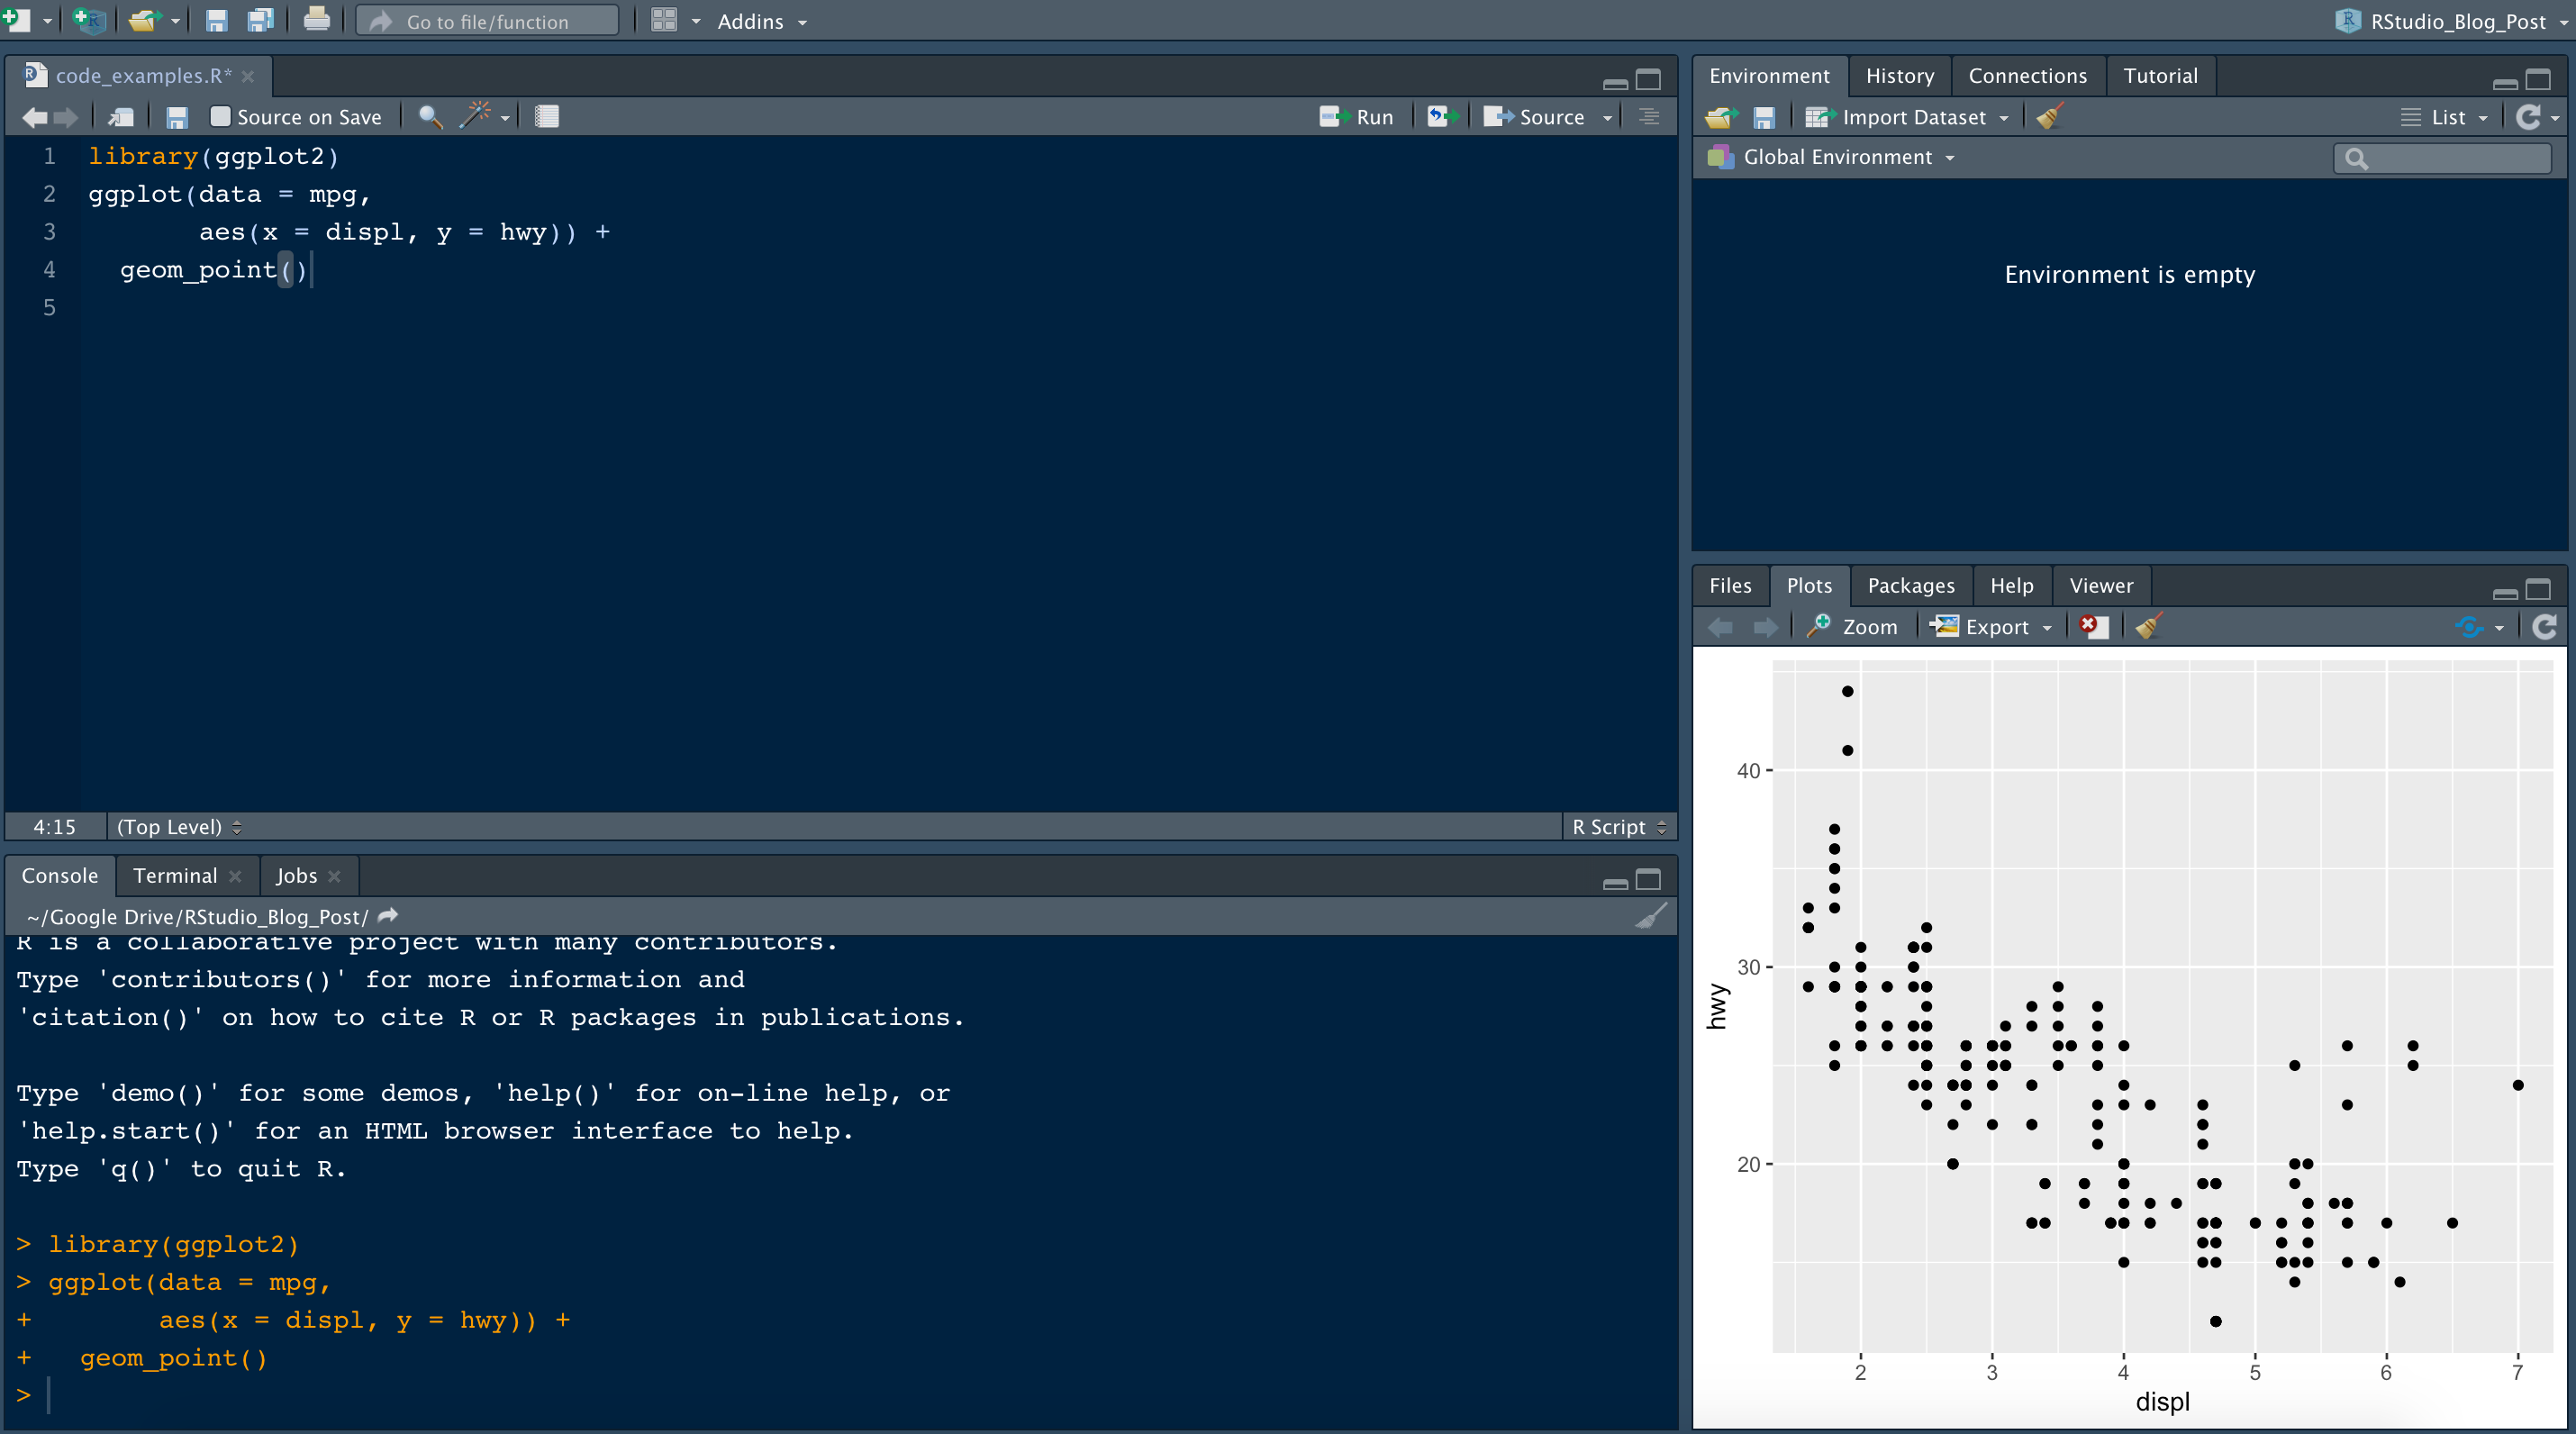 RStudio Layout